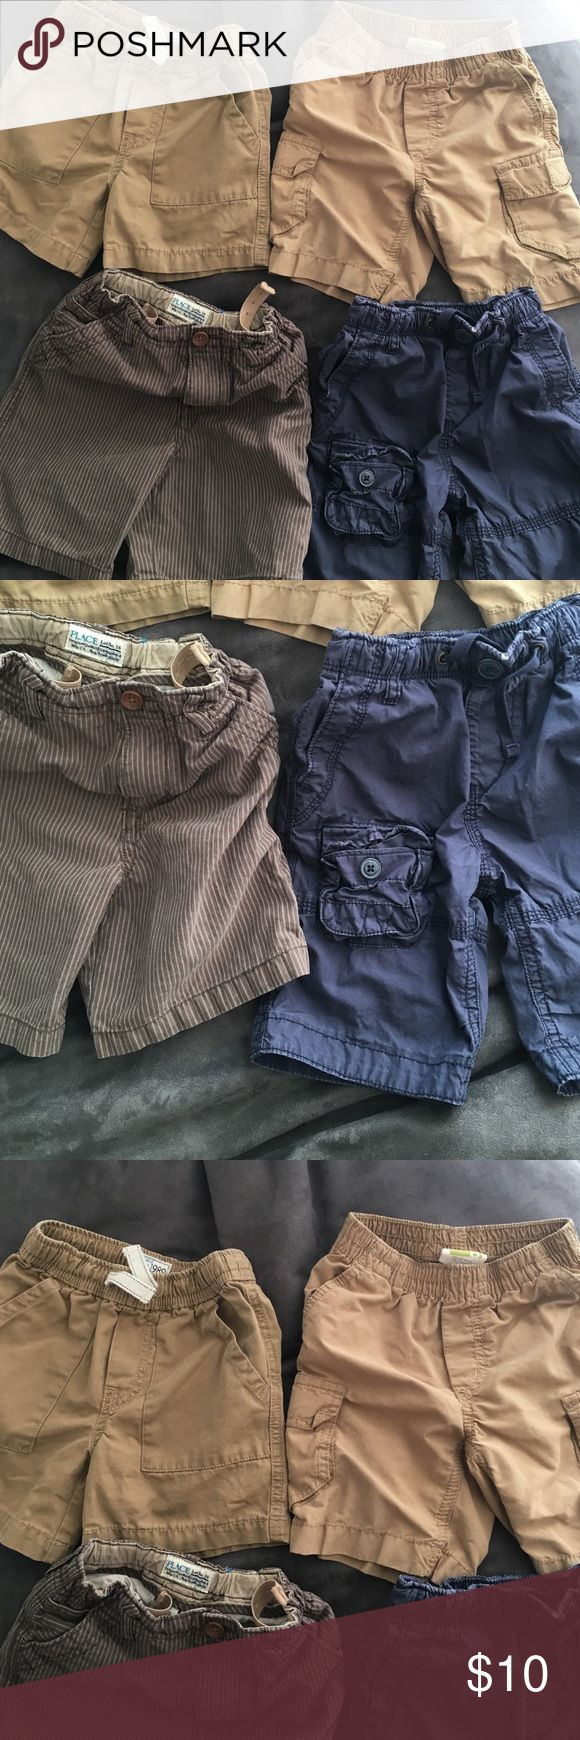 Bundle of boys shorts size 18-24 months 4 pairs of shorts: (brown pinstripe, 24 months, Children's Place), (navy blue cargo, 18-24 months, Baby Gap), (khaki shorts, 18-24 months, Children's Place), (khaki shorts, 18-24 months, Crazy 8). Good used condition. Bundle with other items from my shop and save 20%! Bottoms Shorts